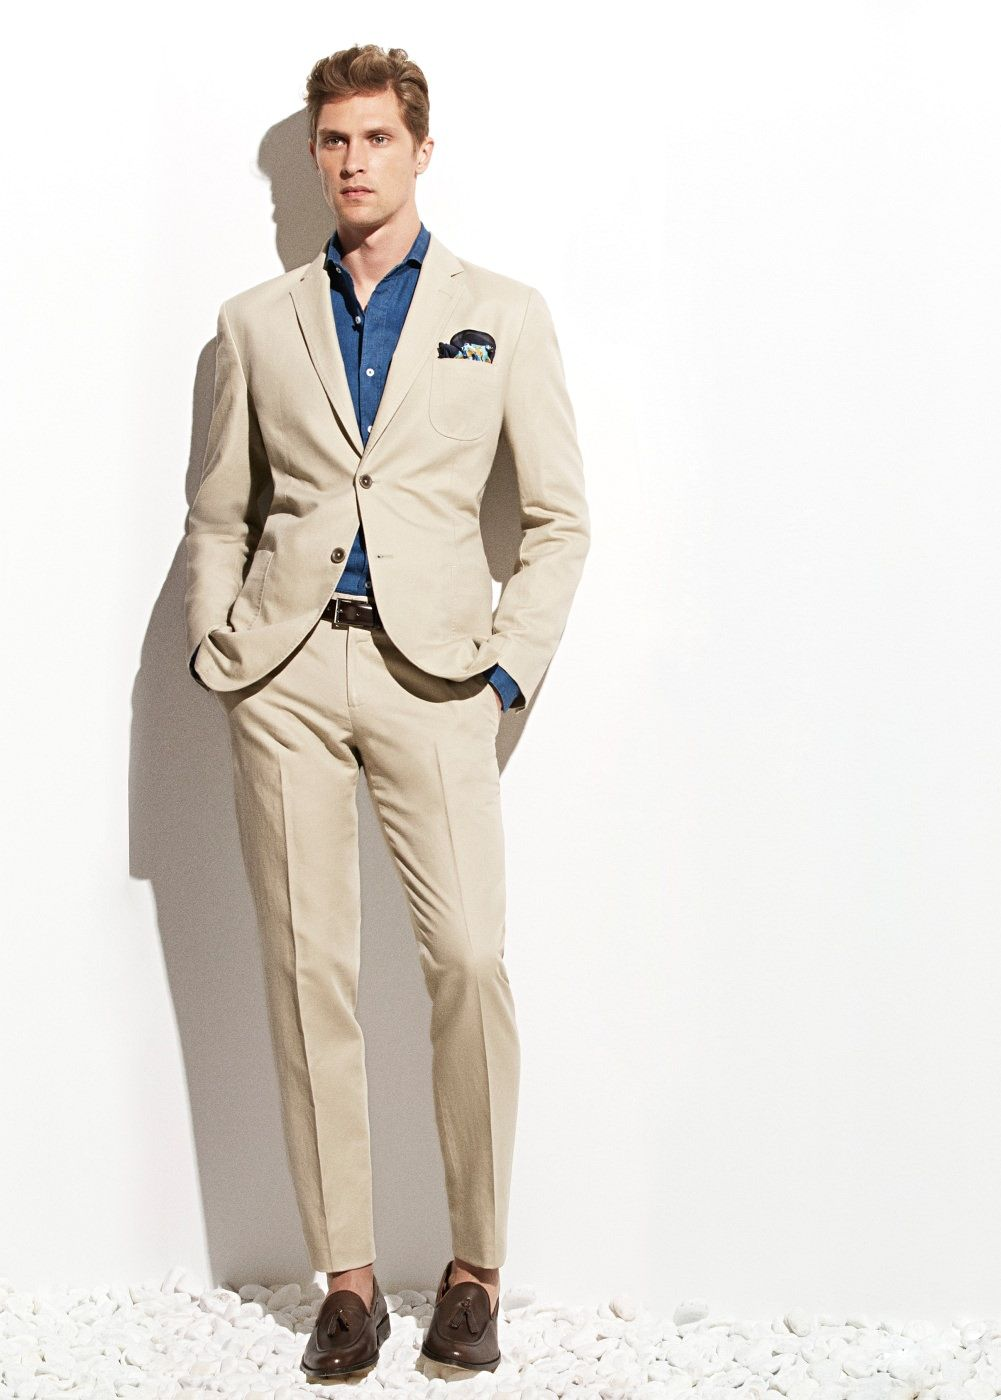 Cotton Linen Suit From Mango All About Men In 2019